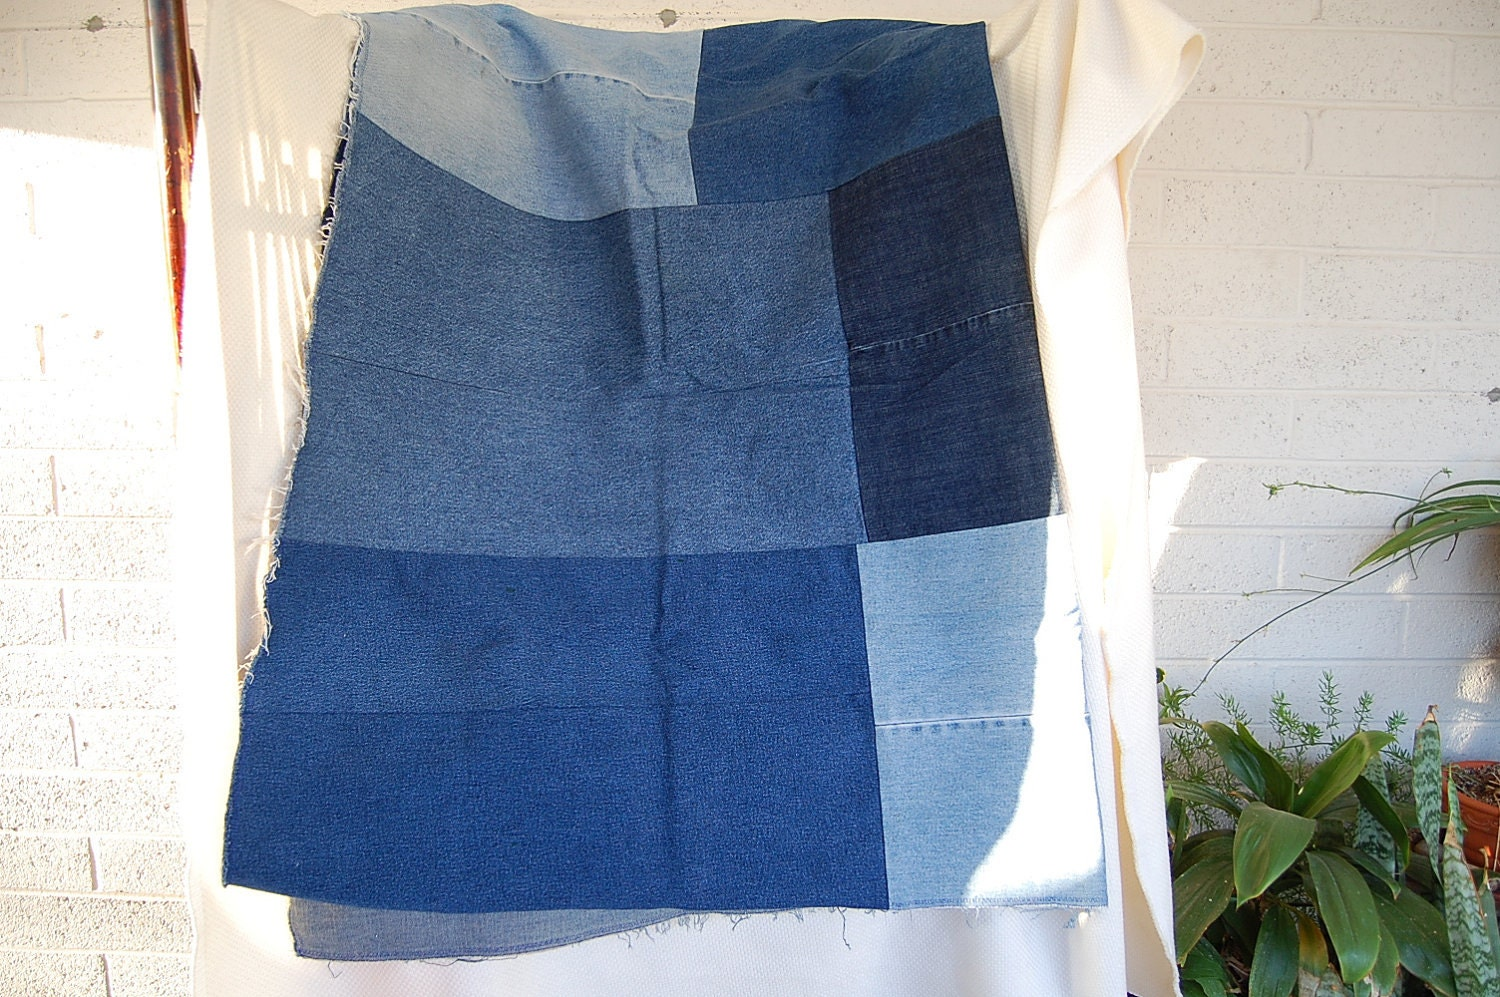 Recycled Jeans Lap Blanket 66 X 44 inches Concert Seating Camping or Great for a Dog Blanket